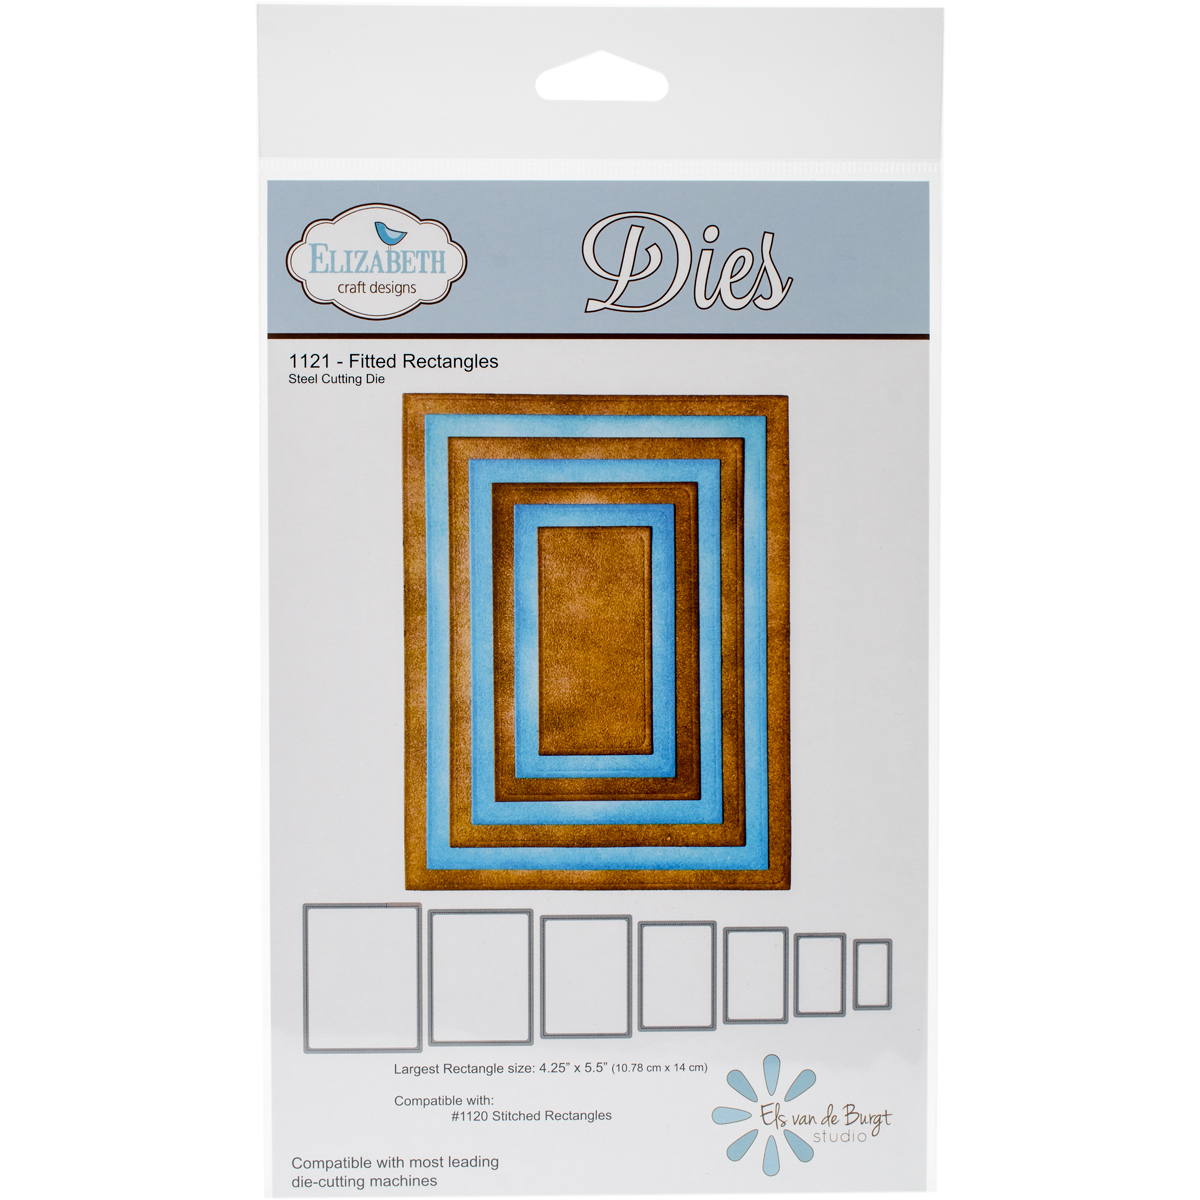 "Elizabeth Craft Metal Die-Fitted Rectangles, 4.25""X5.5"" Largest"